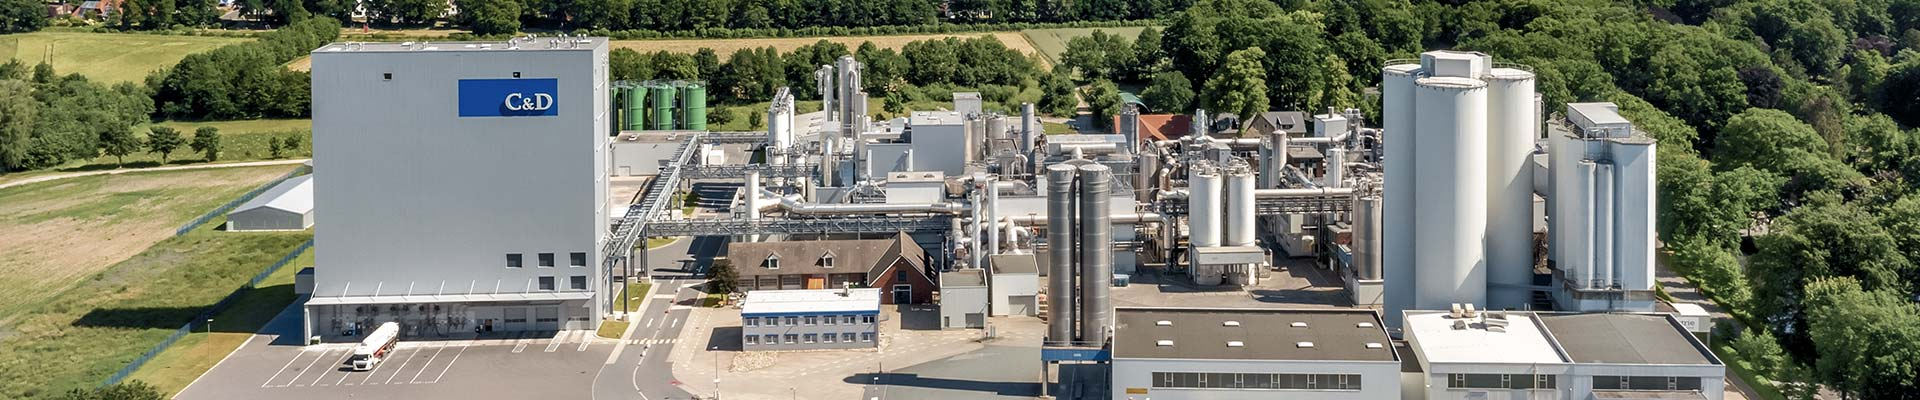 The headquarters of the Crespel & Deiters Group in Germany is where the production of wheat starches and wheat proteins takes place, as well as the production of the highly functional products of the brands   Crespel & Deiters